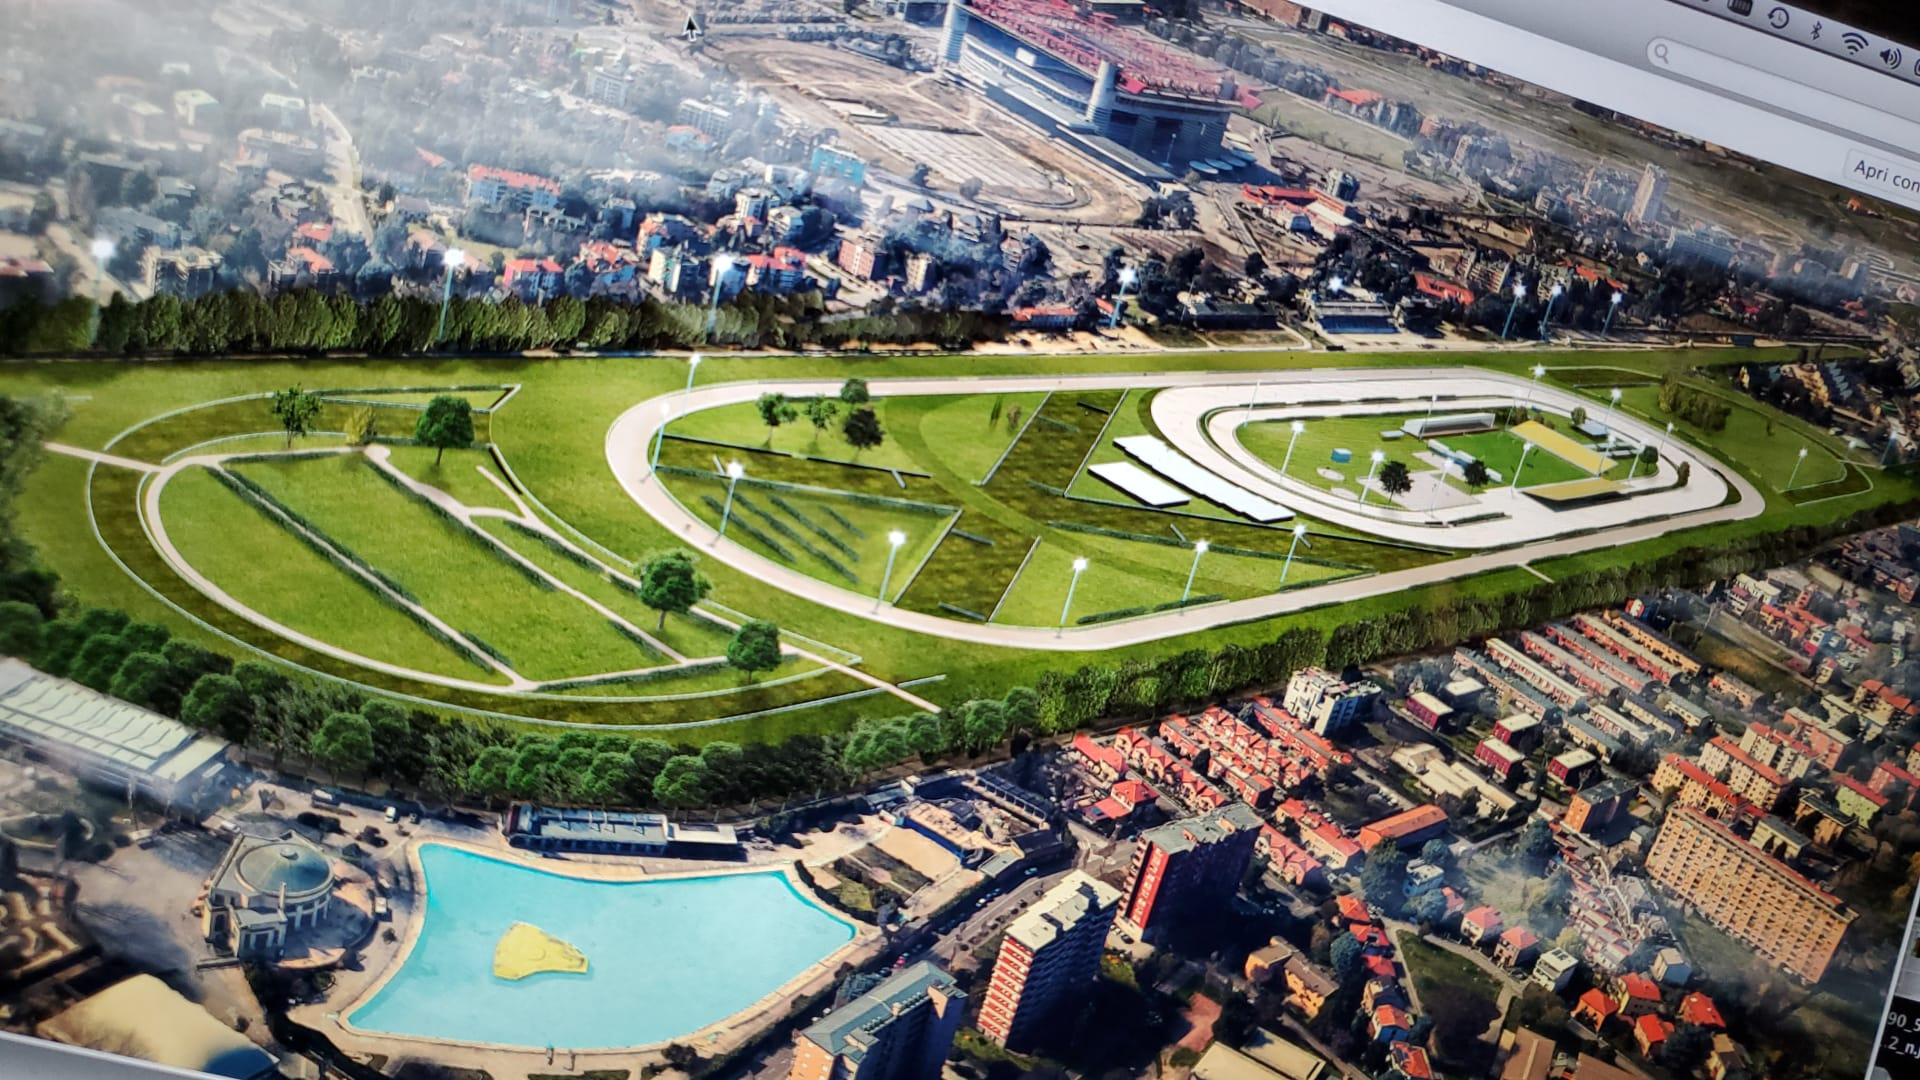 San Siro 4.0 : plat, trot, obstacle et concours